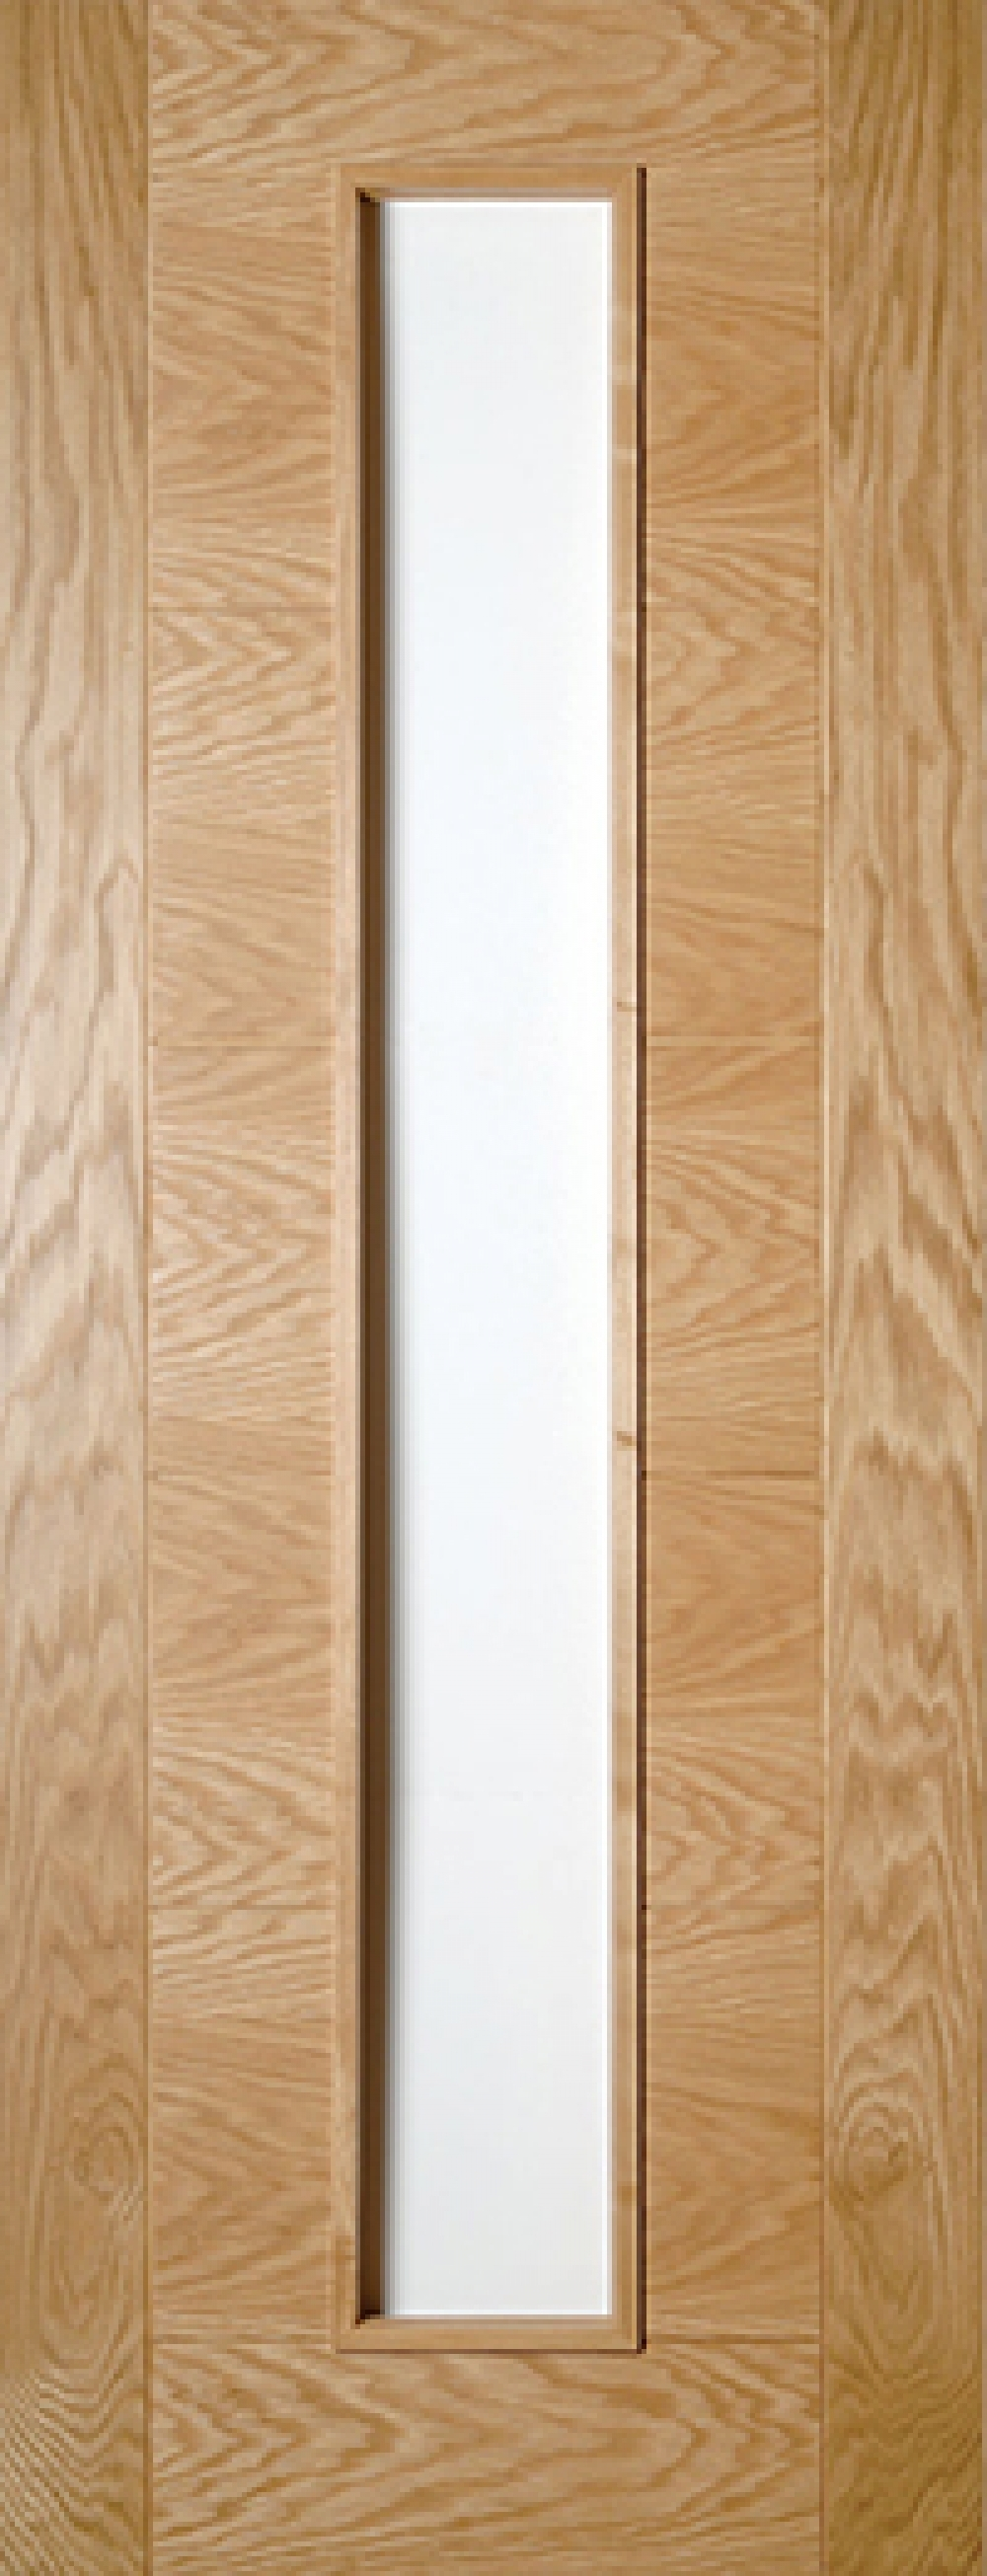 Seville Oak Door Unglazed - Prefinished